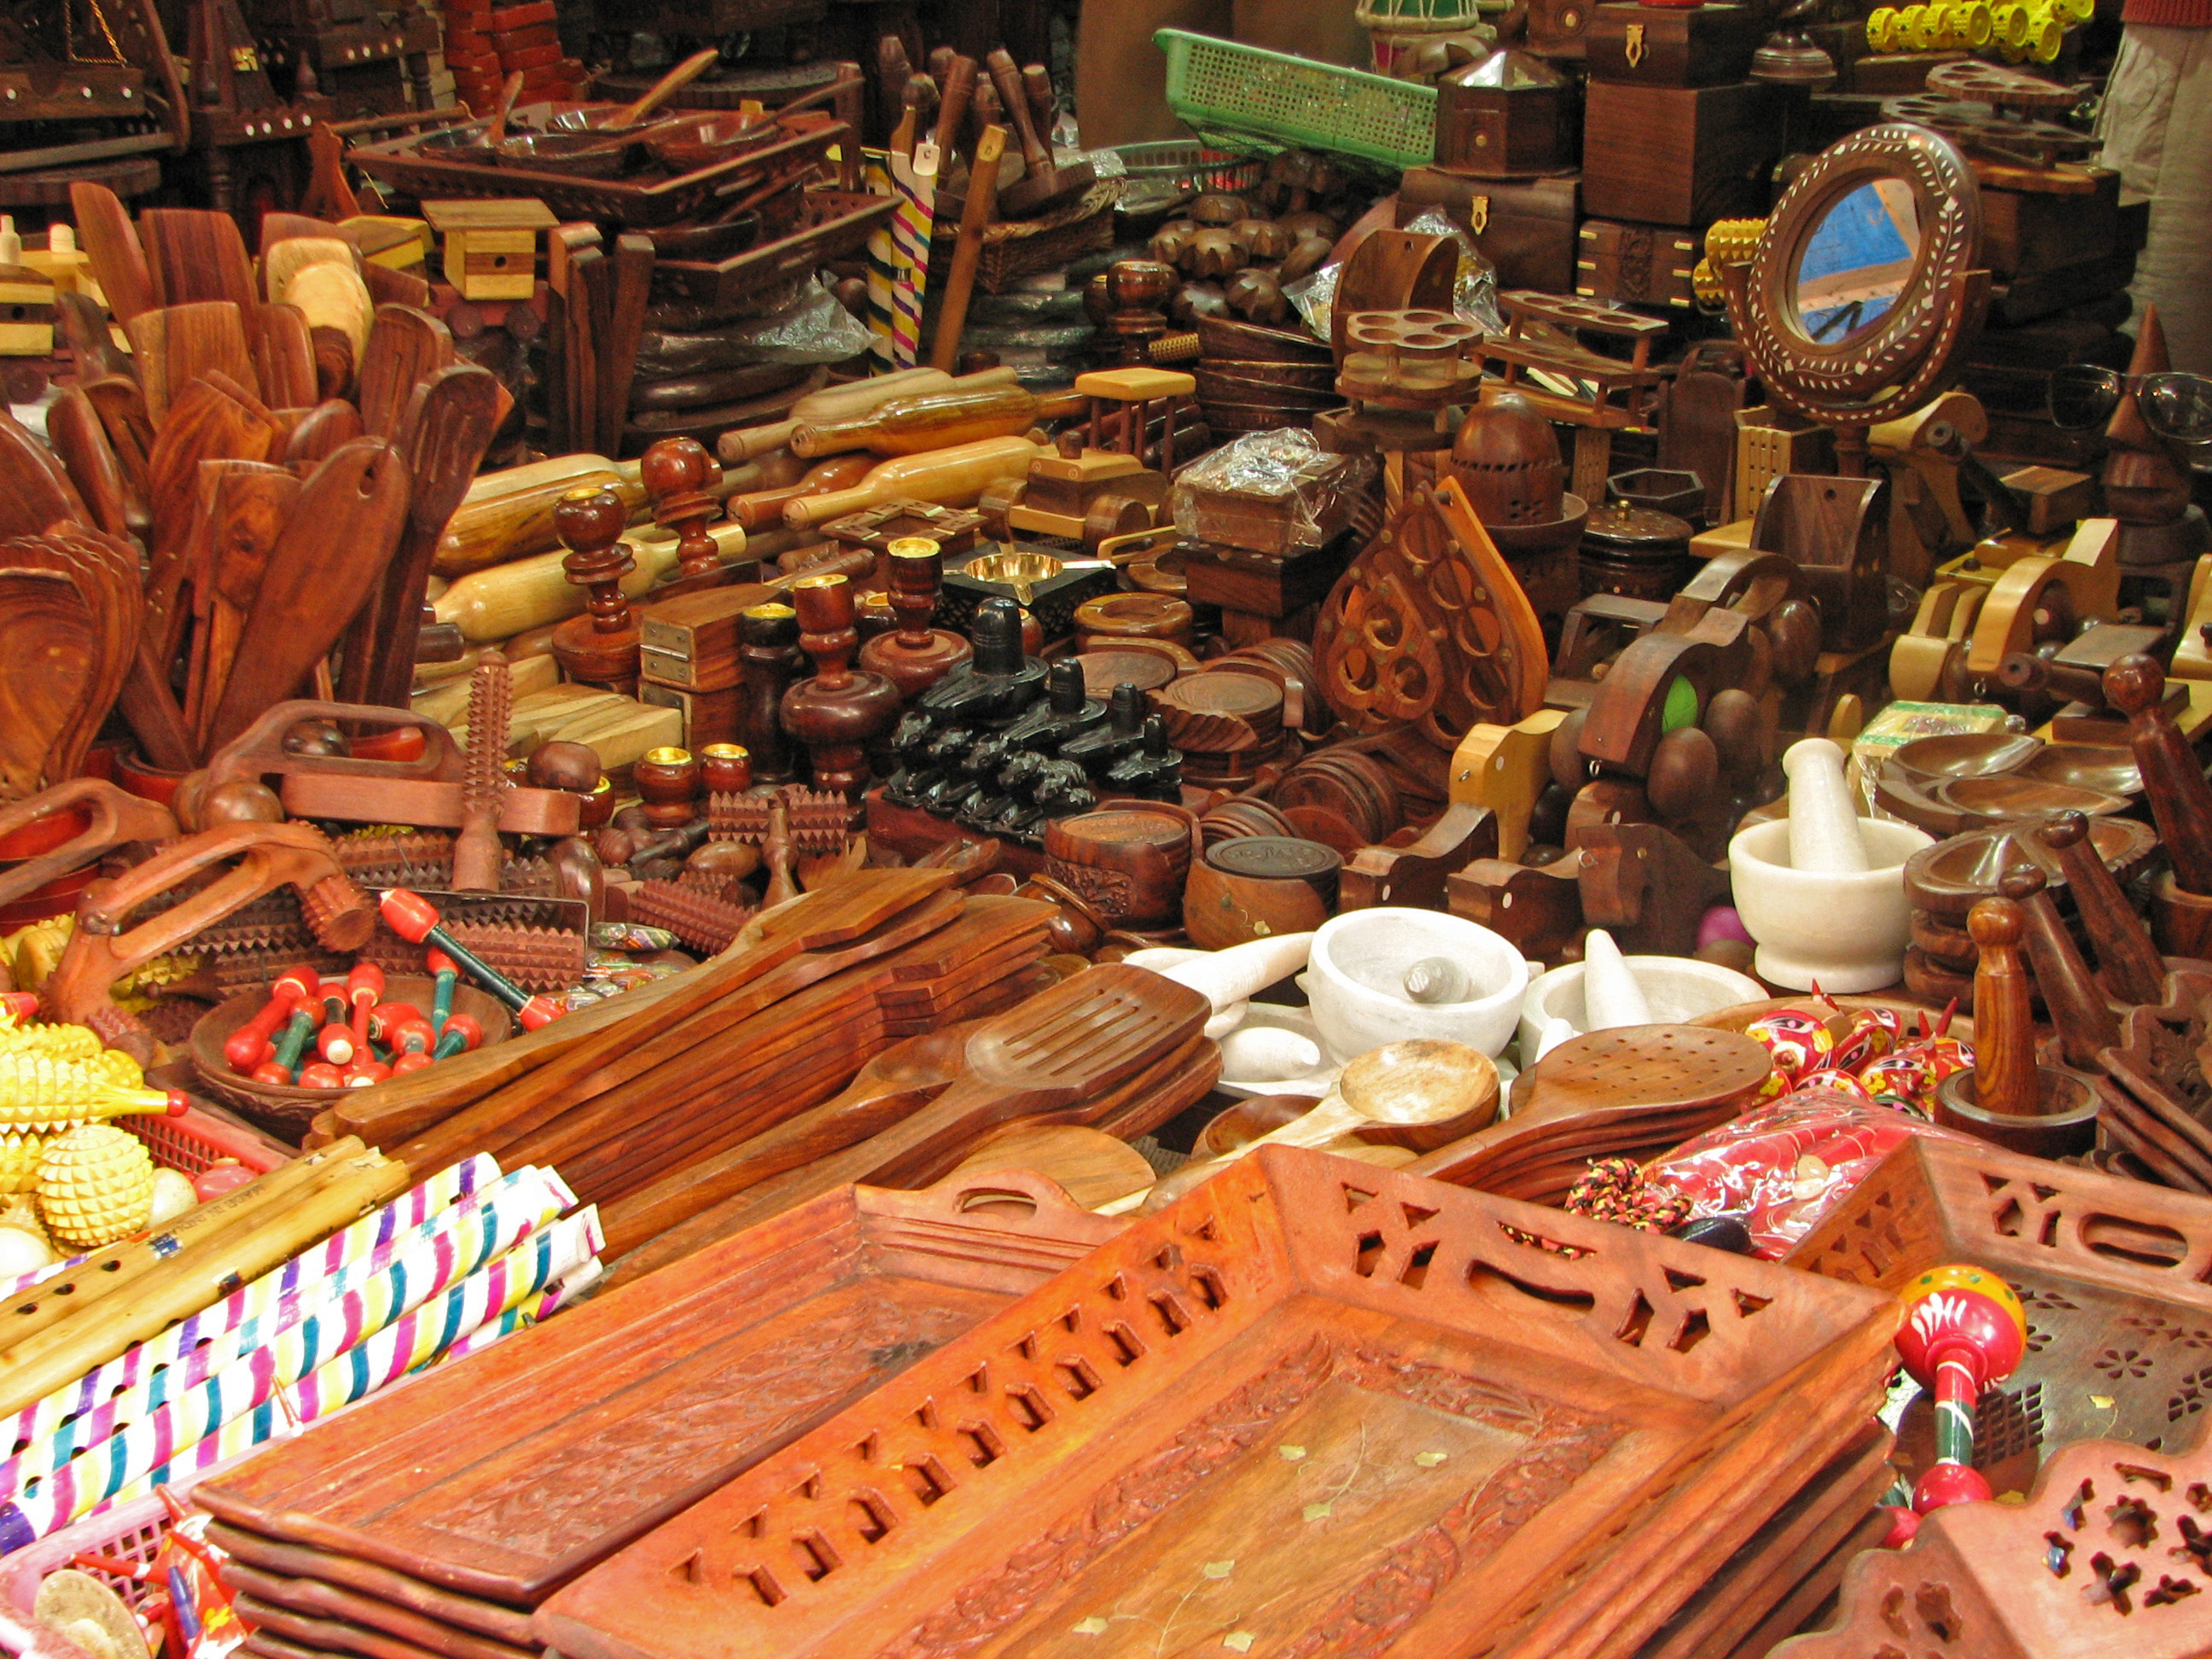 Wooden products of Bhutan